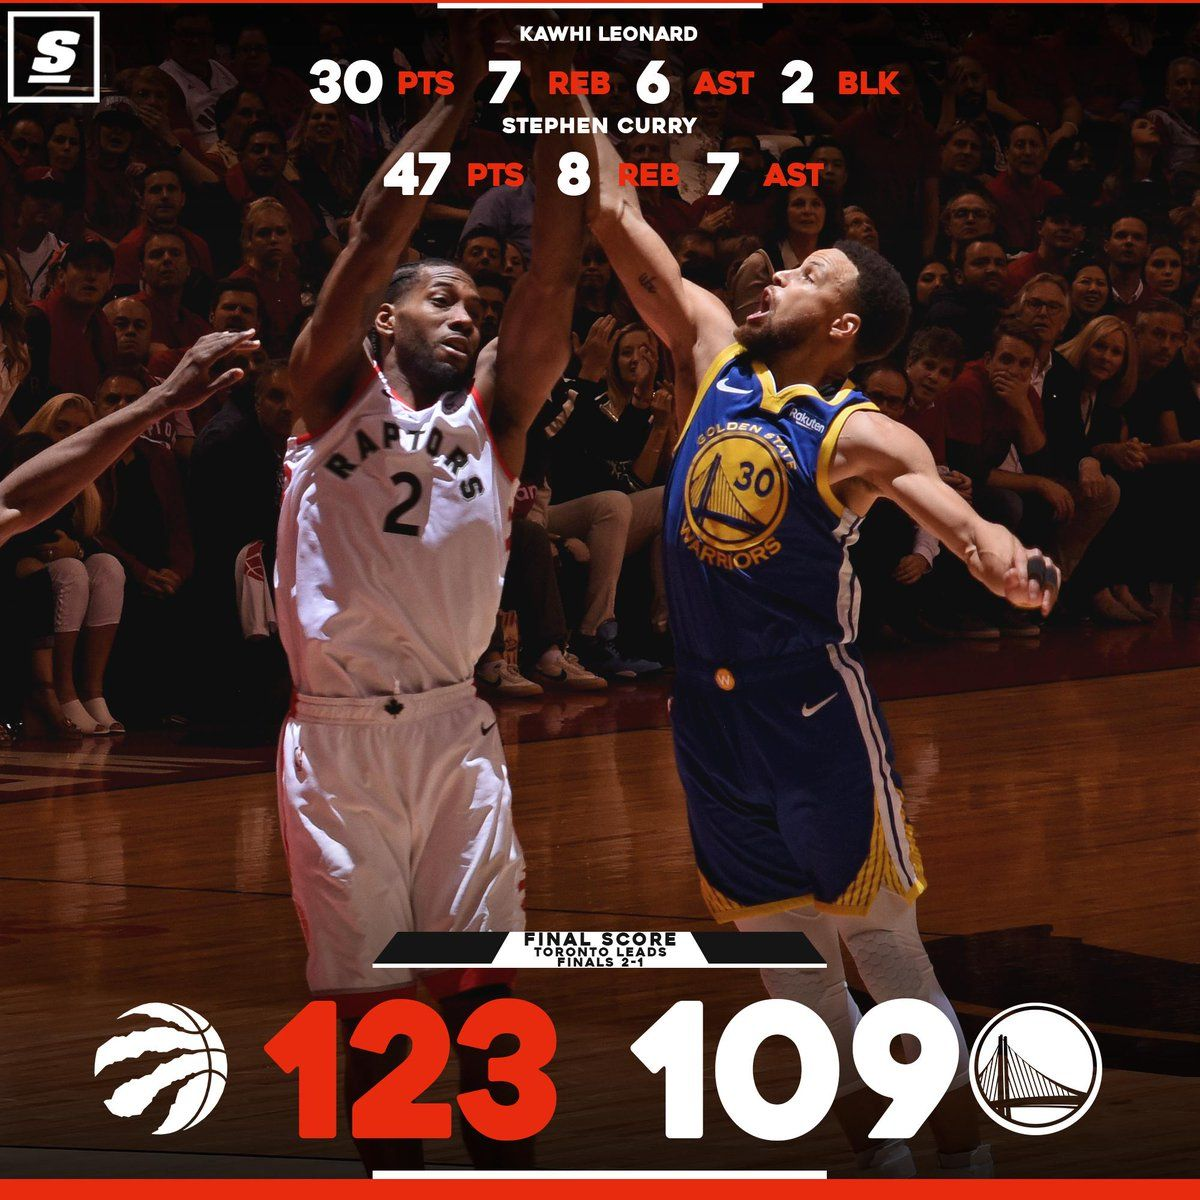 Raptors Roll To A Big Game 3 Victory Wethenorth Nbafinals Thescore Com Nba Scores Basketball Design Basketball Finals